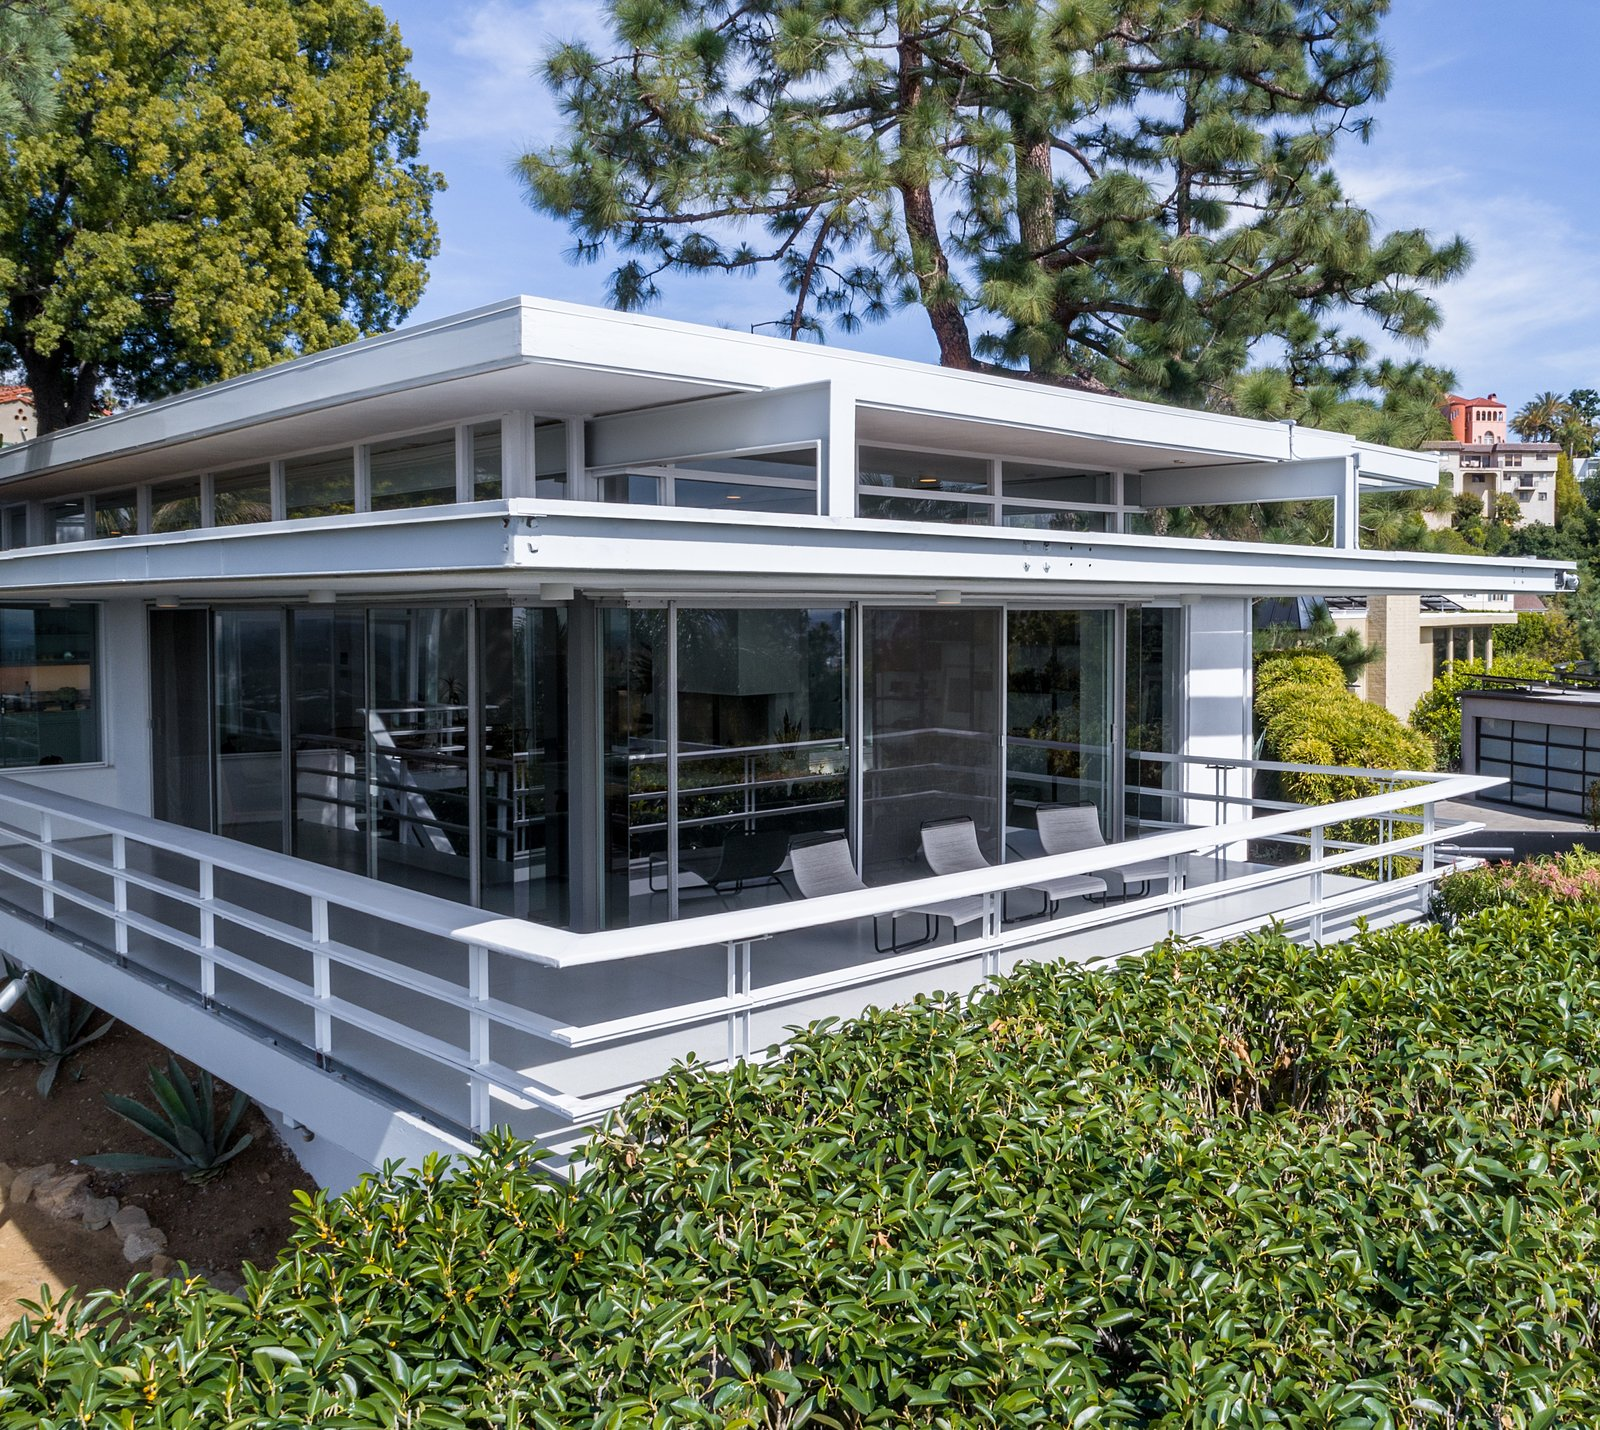 Clerestory windows add to the clean, modernist vibe.